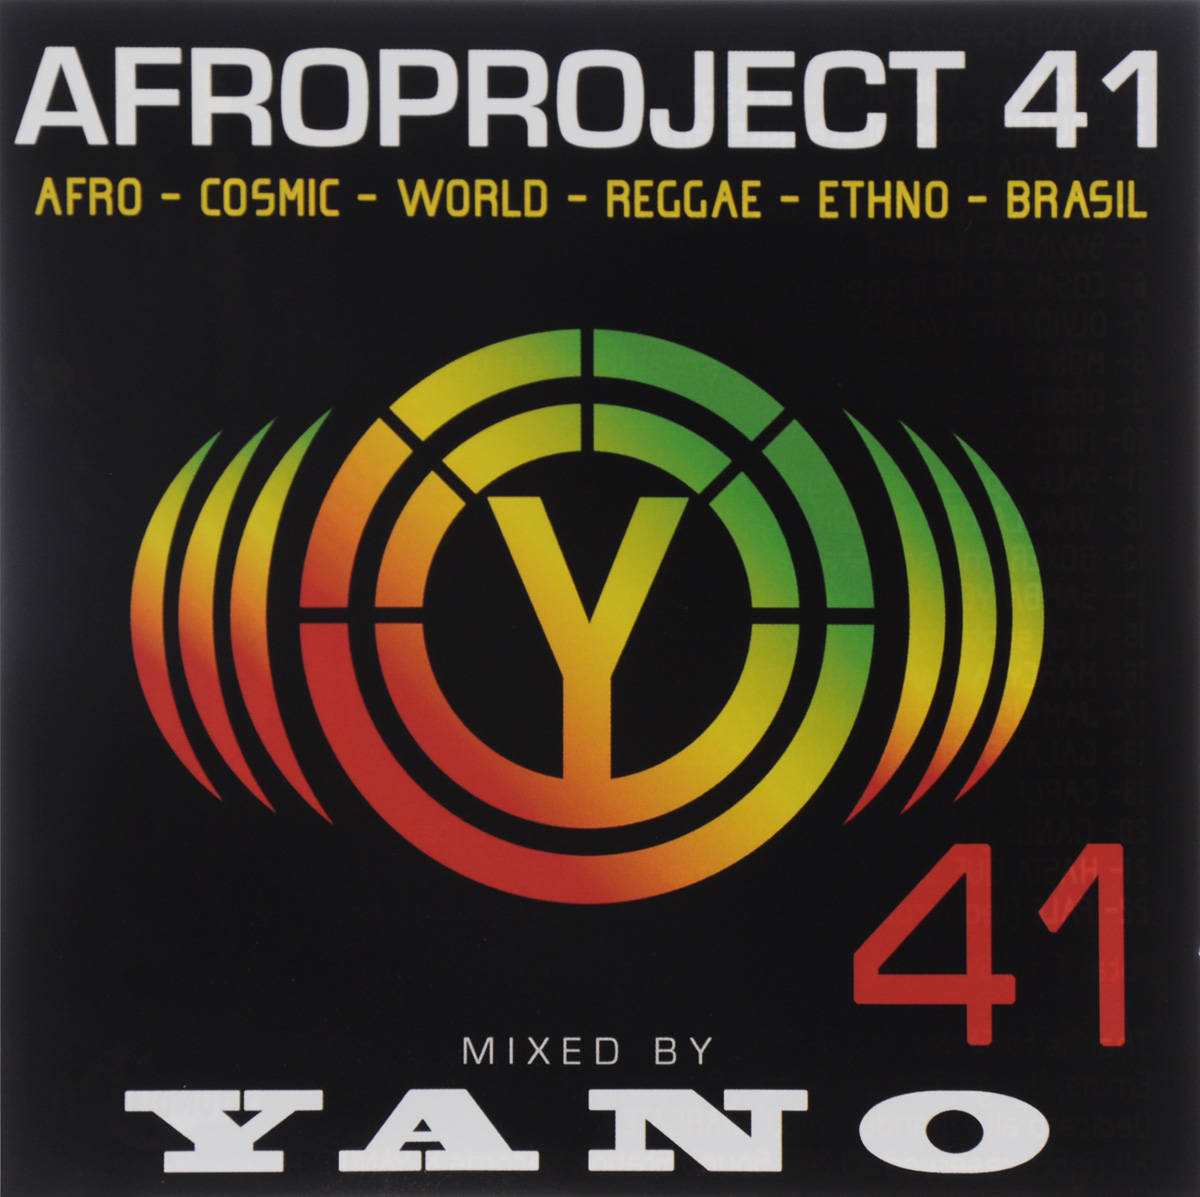 Dj Yano DJ Yano. Afro Project Vol. 41 dj yano dj yano afro project vol 24 special limited edition cd dvd